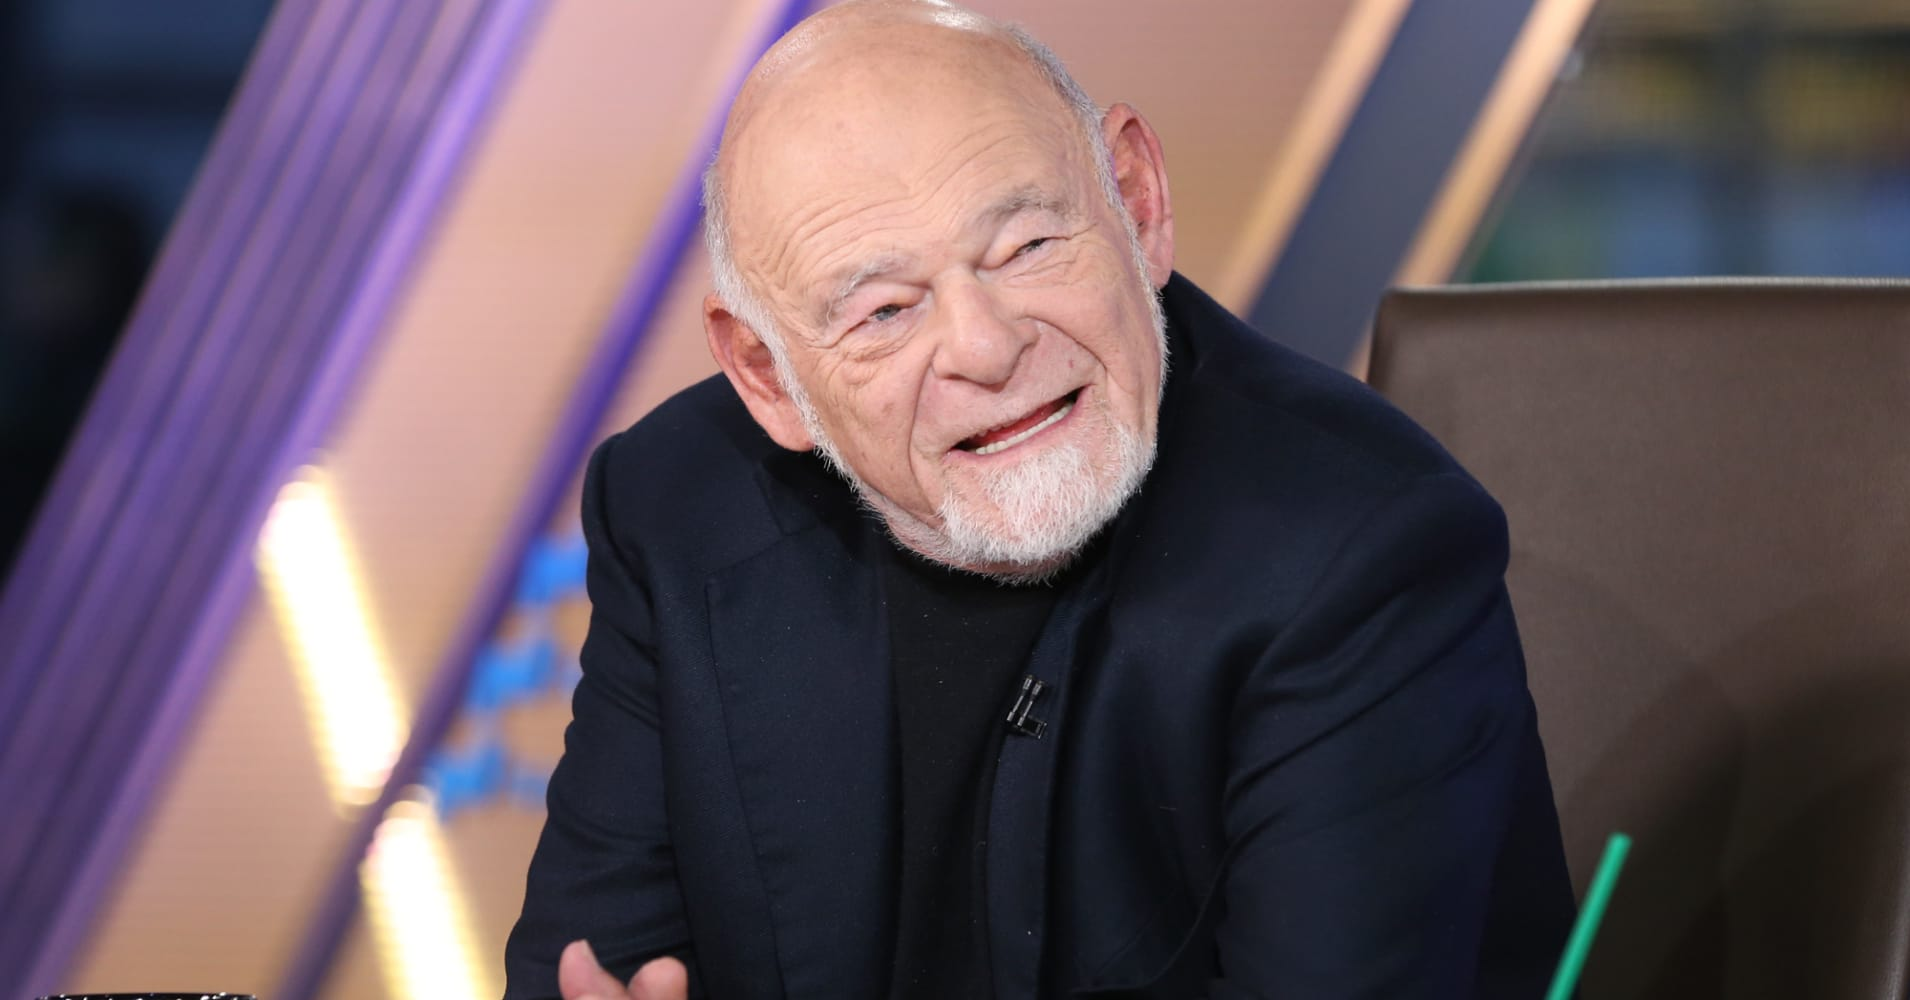 Billionaire Sam Zell sees 'irrational exuberance' in the stock market and holds mostly cash